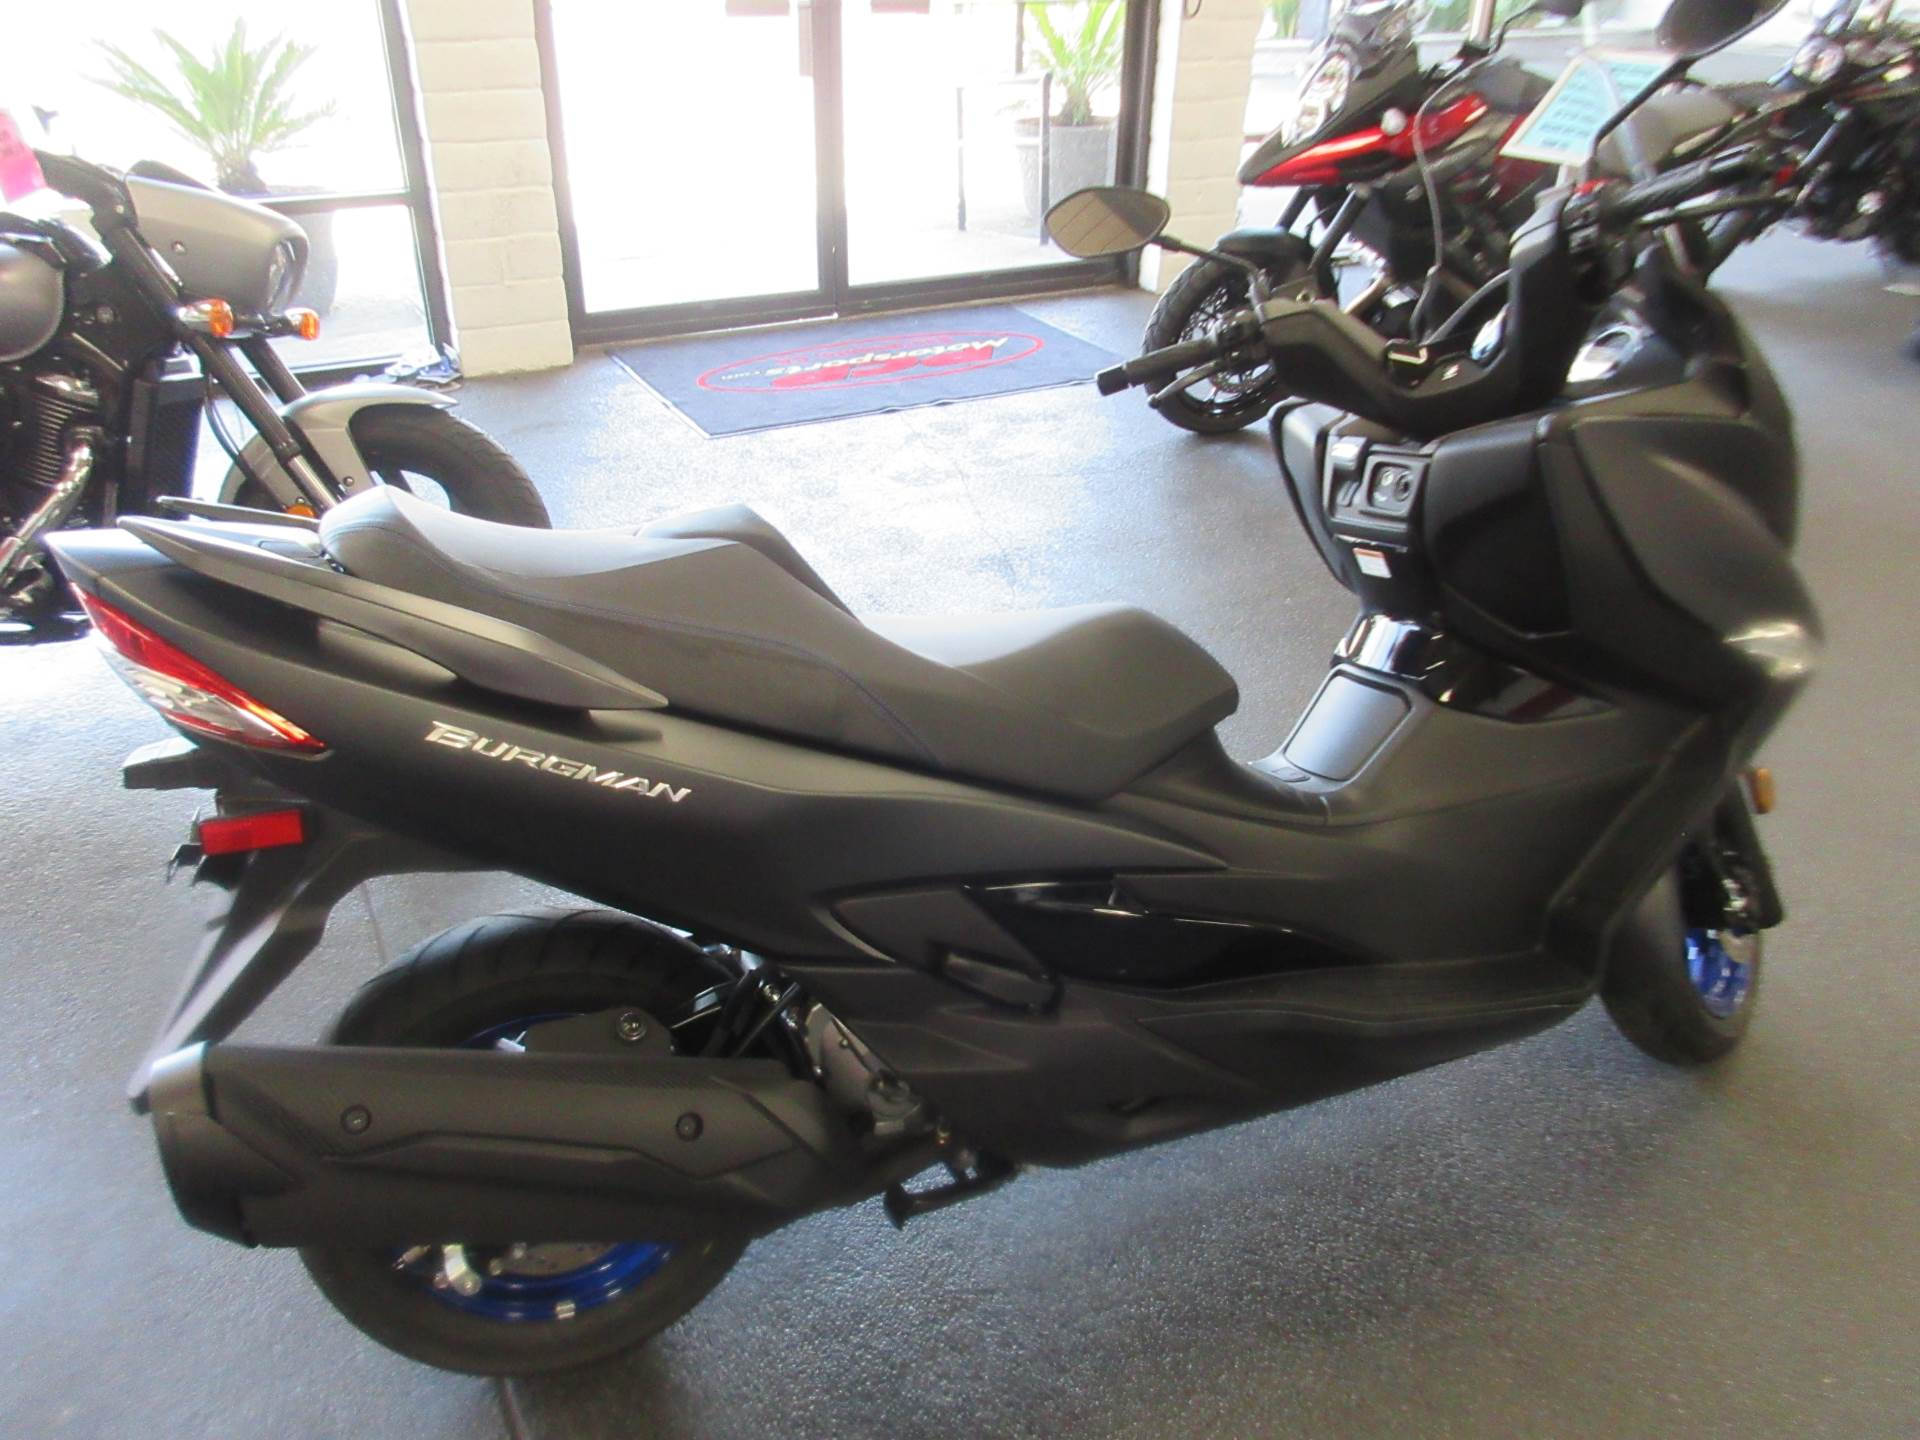 2020 Suzuki Burgman 400 in Sacramento, California - Photo 4